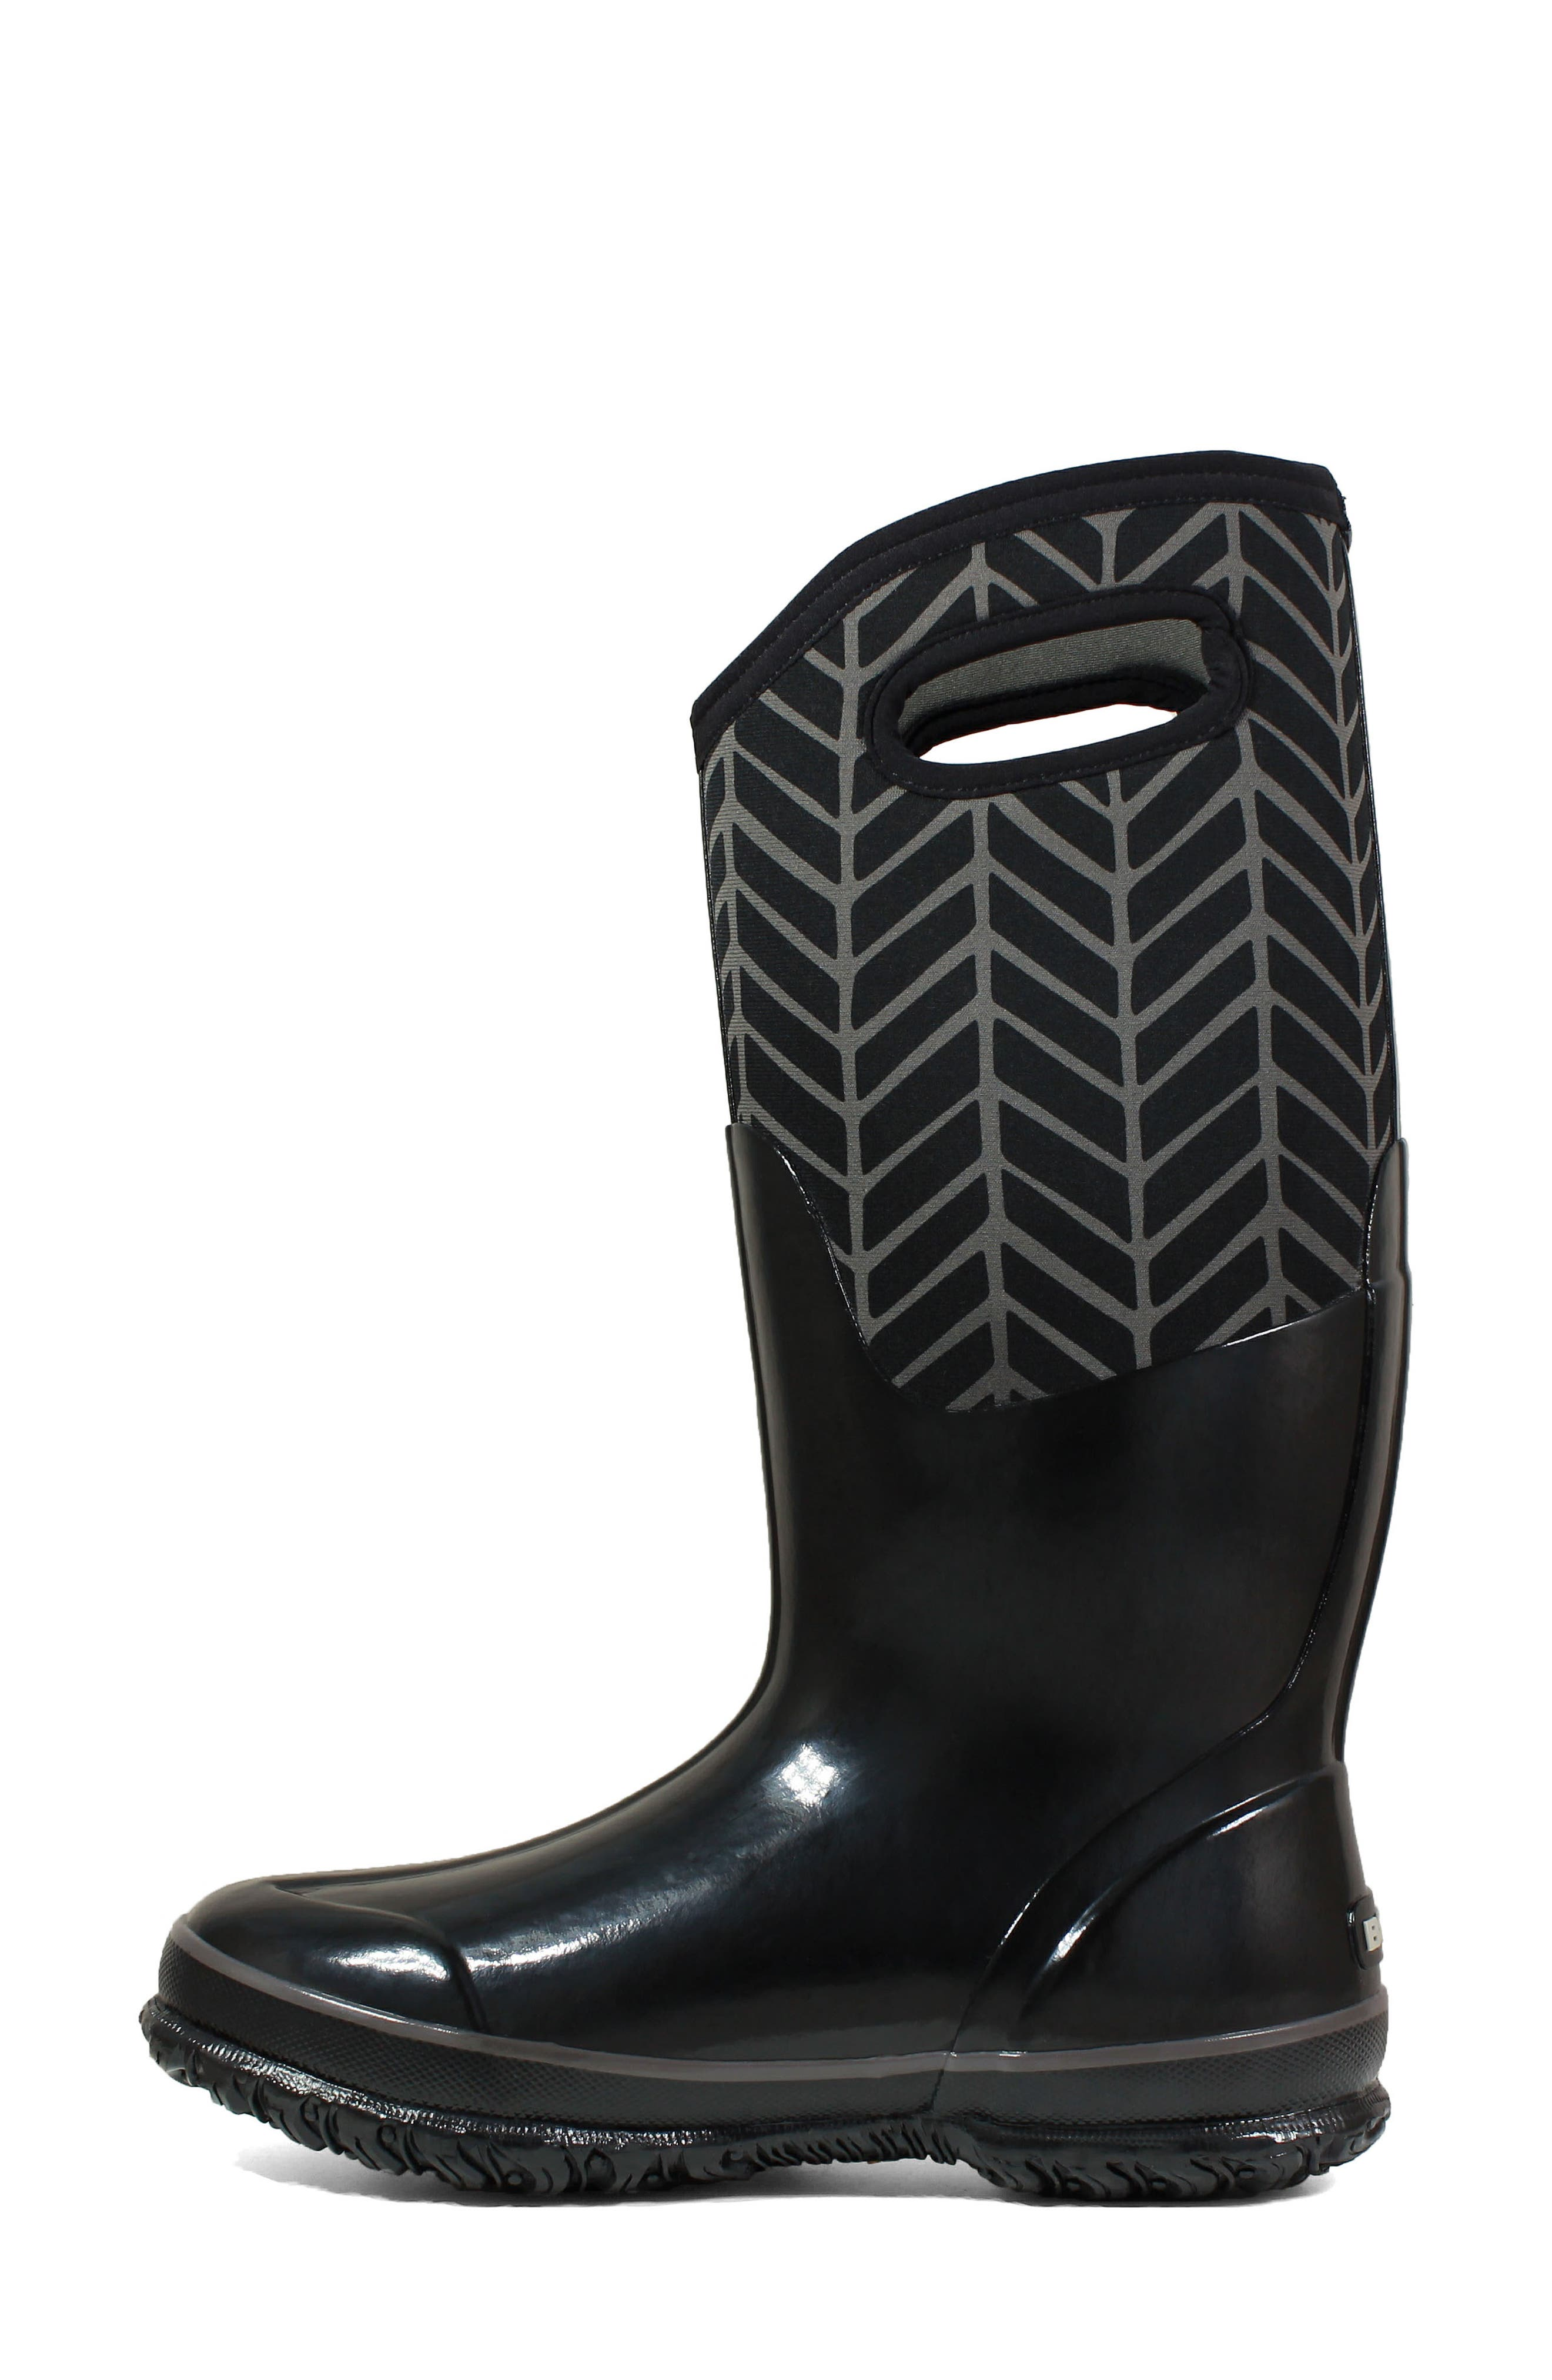 BOGS,                             Classic Tall Badge Waterproof Snow Boot,                             Alternate thumbnail 8, color,                             009